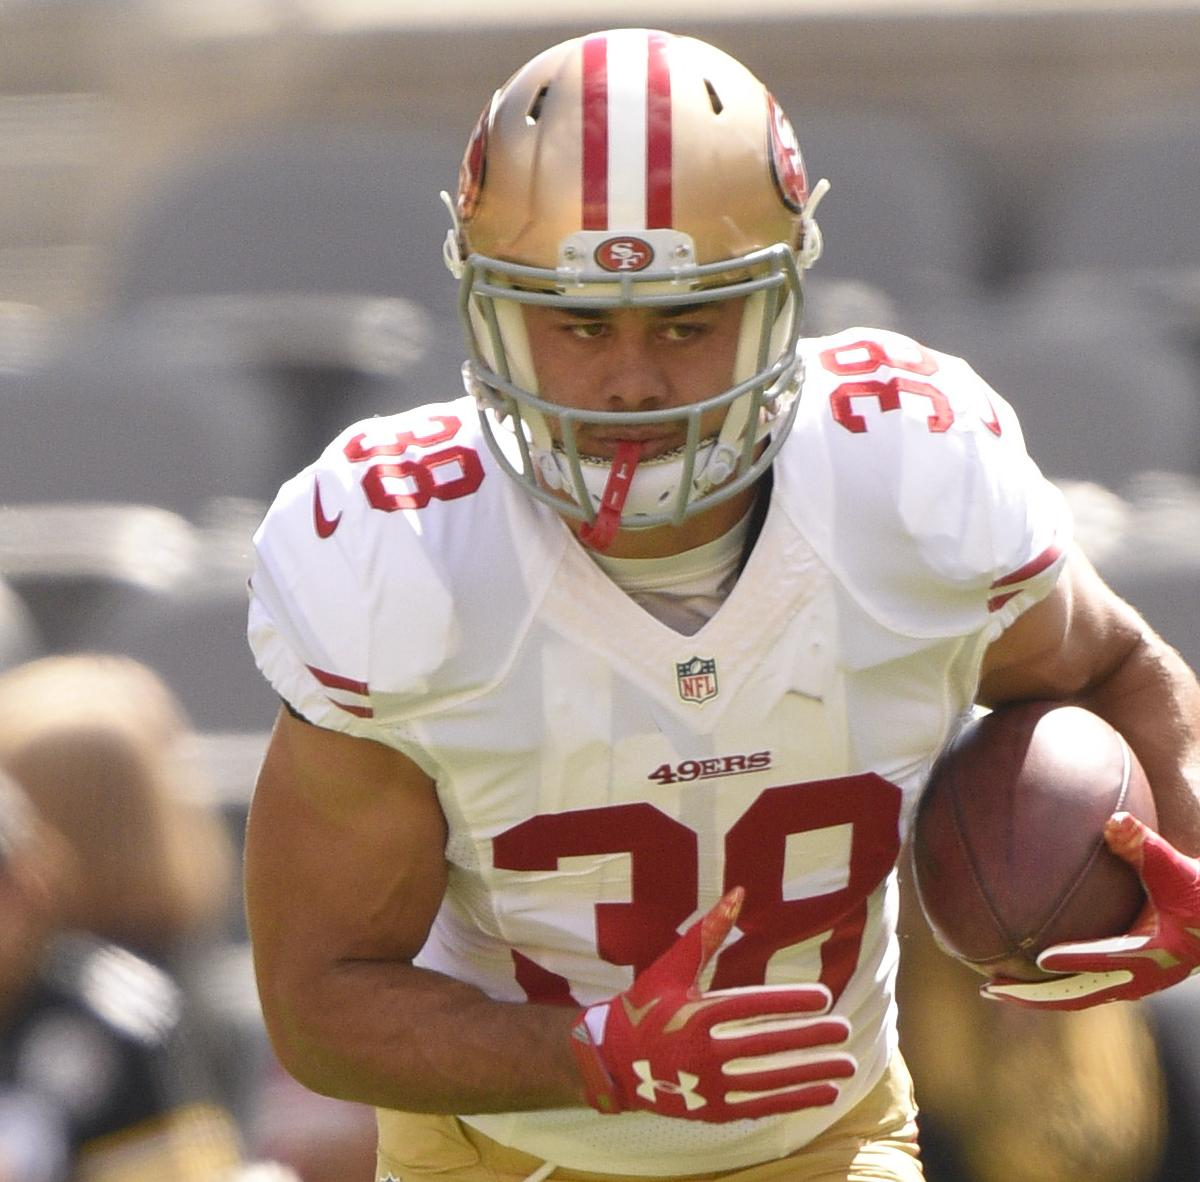 Ex-49ers RB Jarryd Hayne Charged With Sexual Assault In